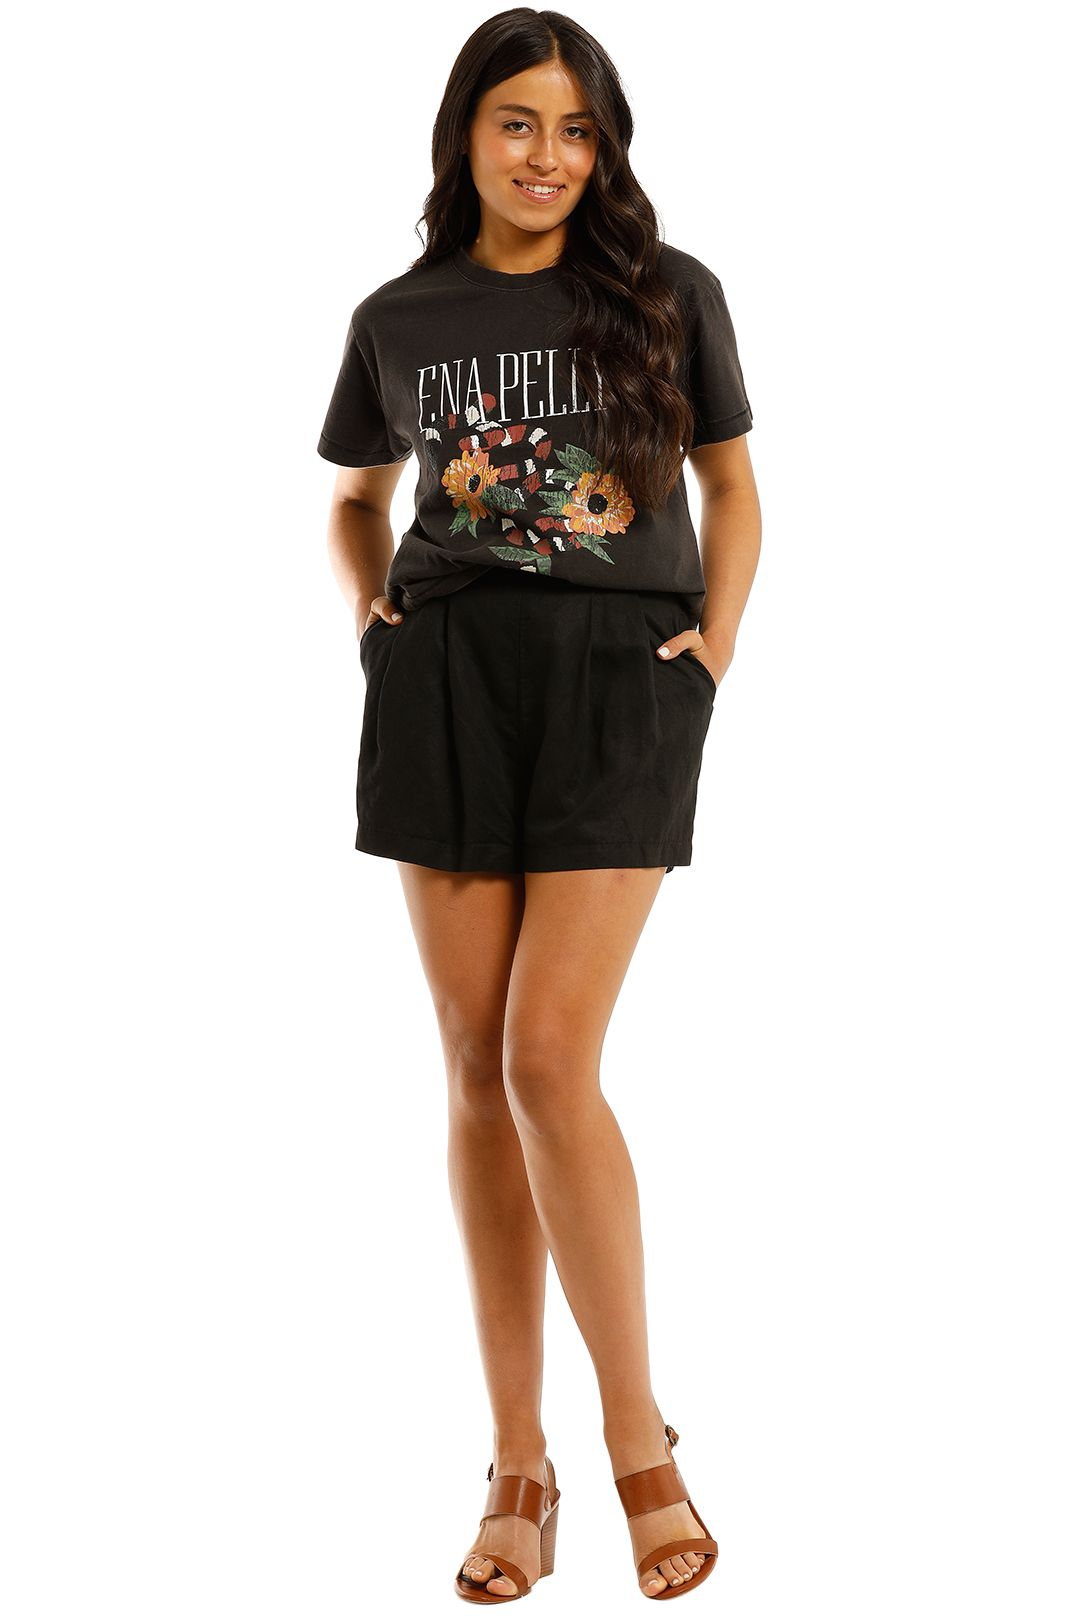 Ena-Pelly-Python-Bloom-Tee-Washed-Black-Front